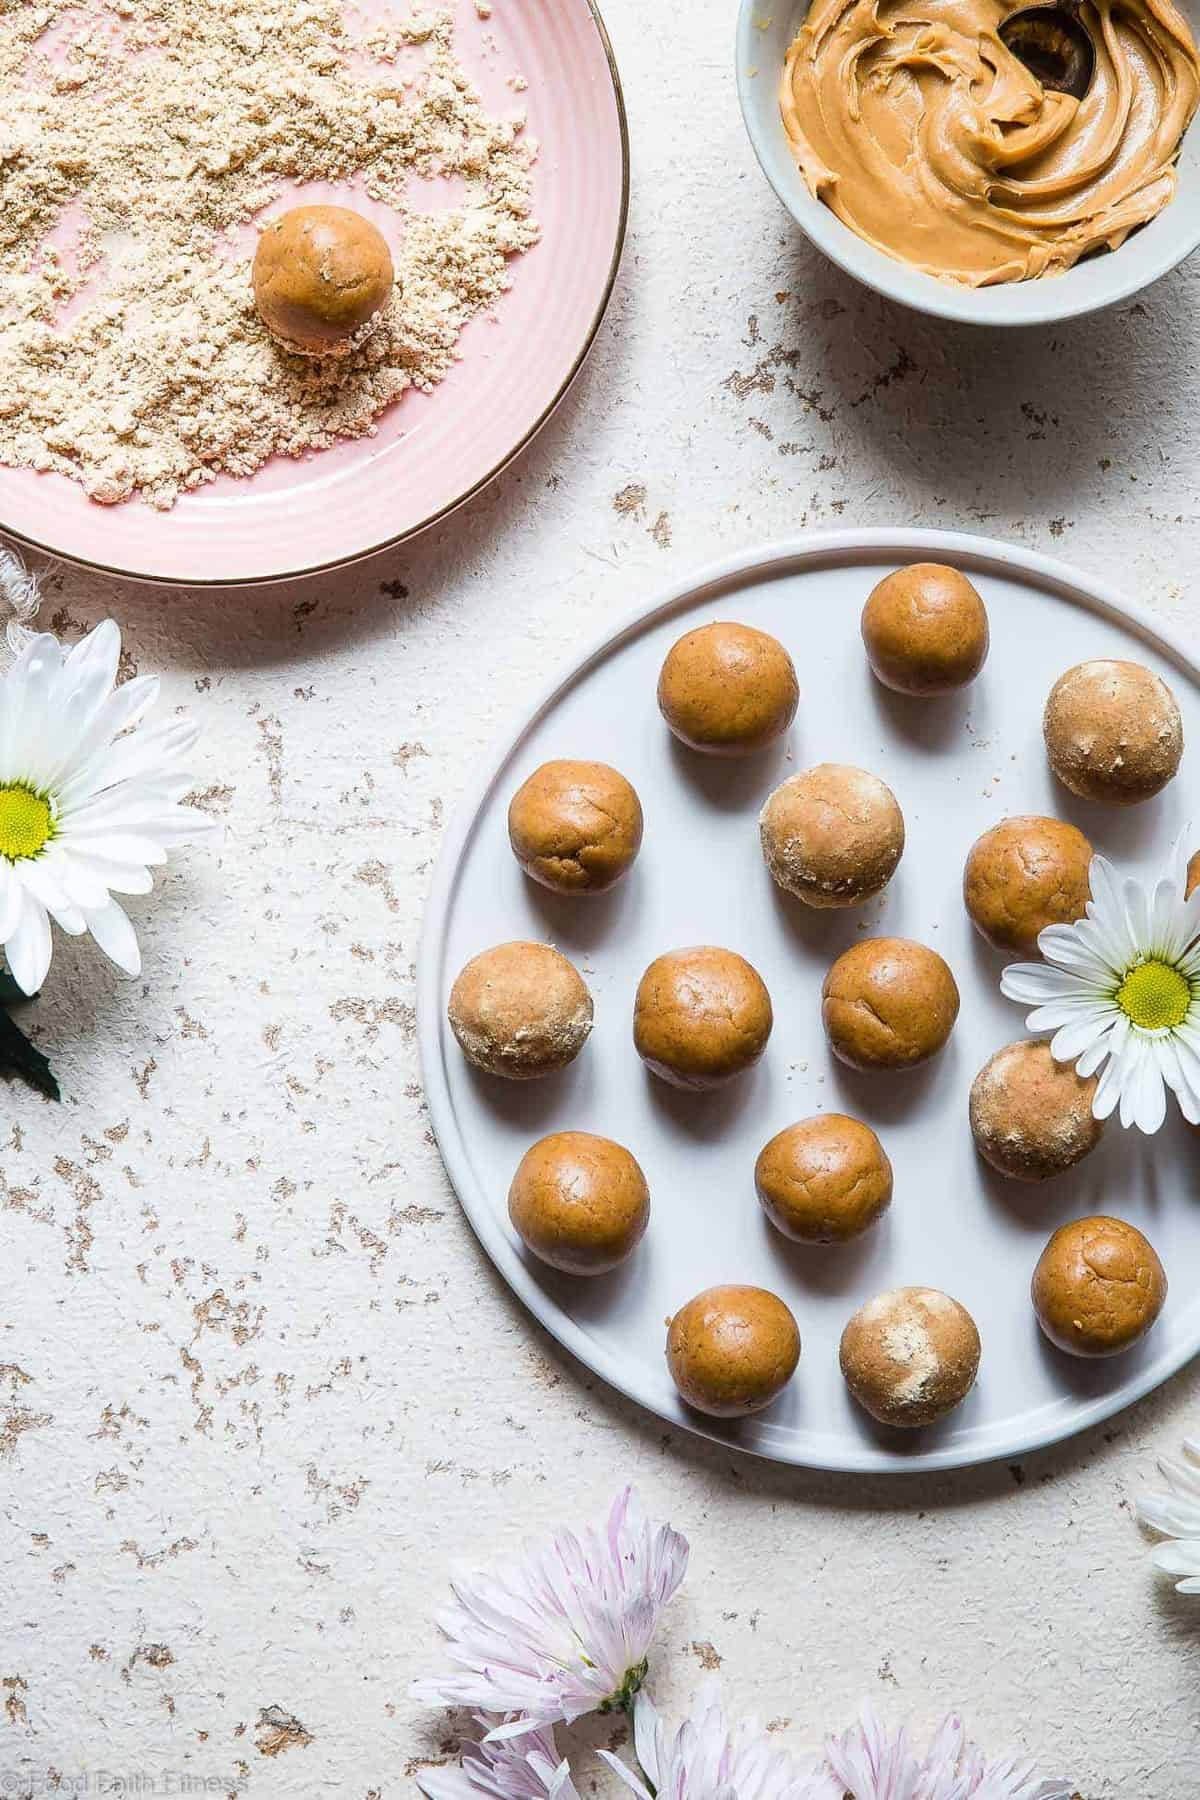 Peanut Butter Protein Healthy Cookie Dough Balls Recipe - This easy recipe is only 4 ingredients and take 10 mins! Gluten free, dairy free and PACKED with protein too! A healthy snack for kids or adults! | #Foodfaithfitness | #Glutenfree #Dairyfree #PeanutButter #Healthy #CookieDough